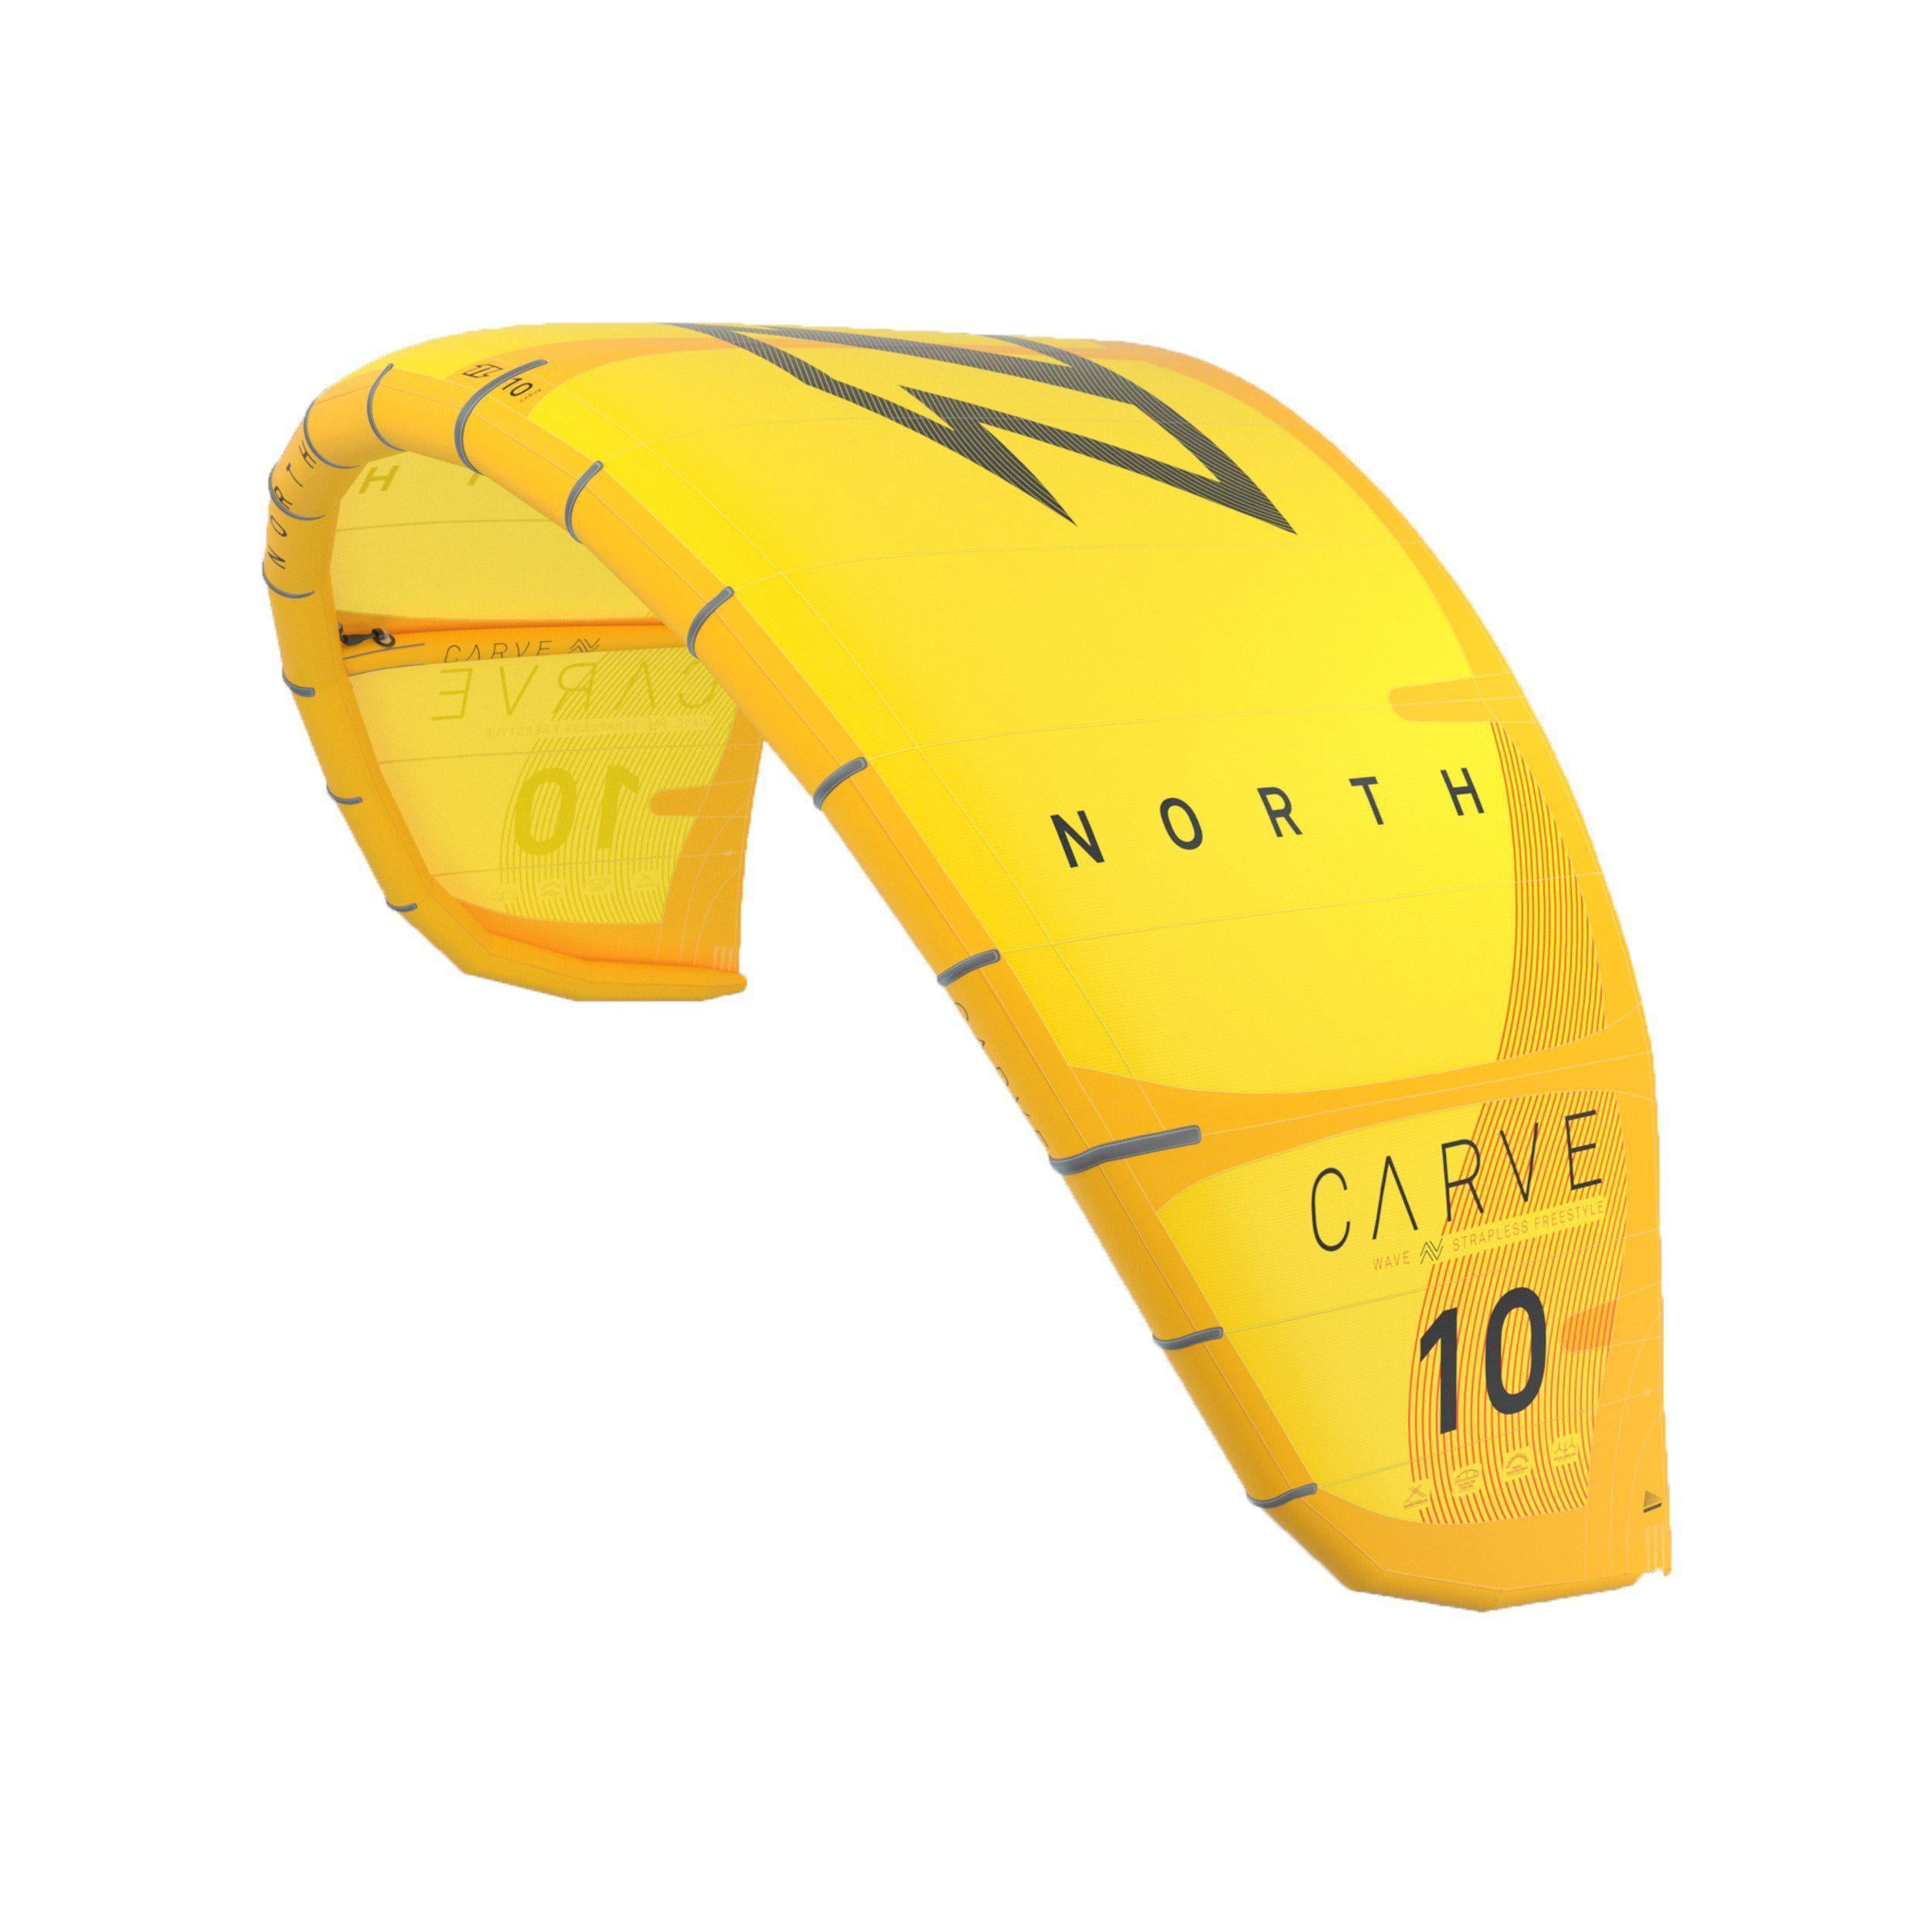 2020 North Carve Kiteboarding Kite-Big Winds